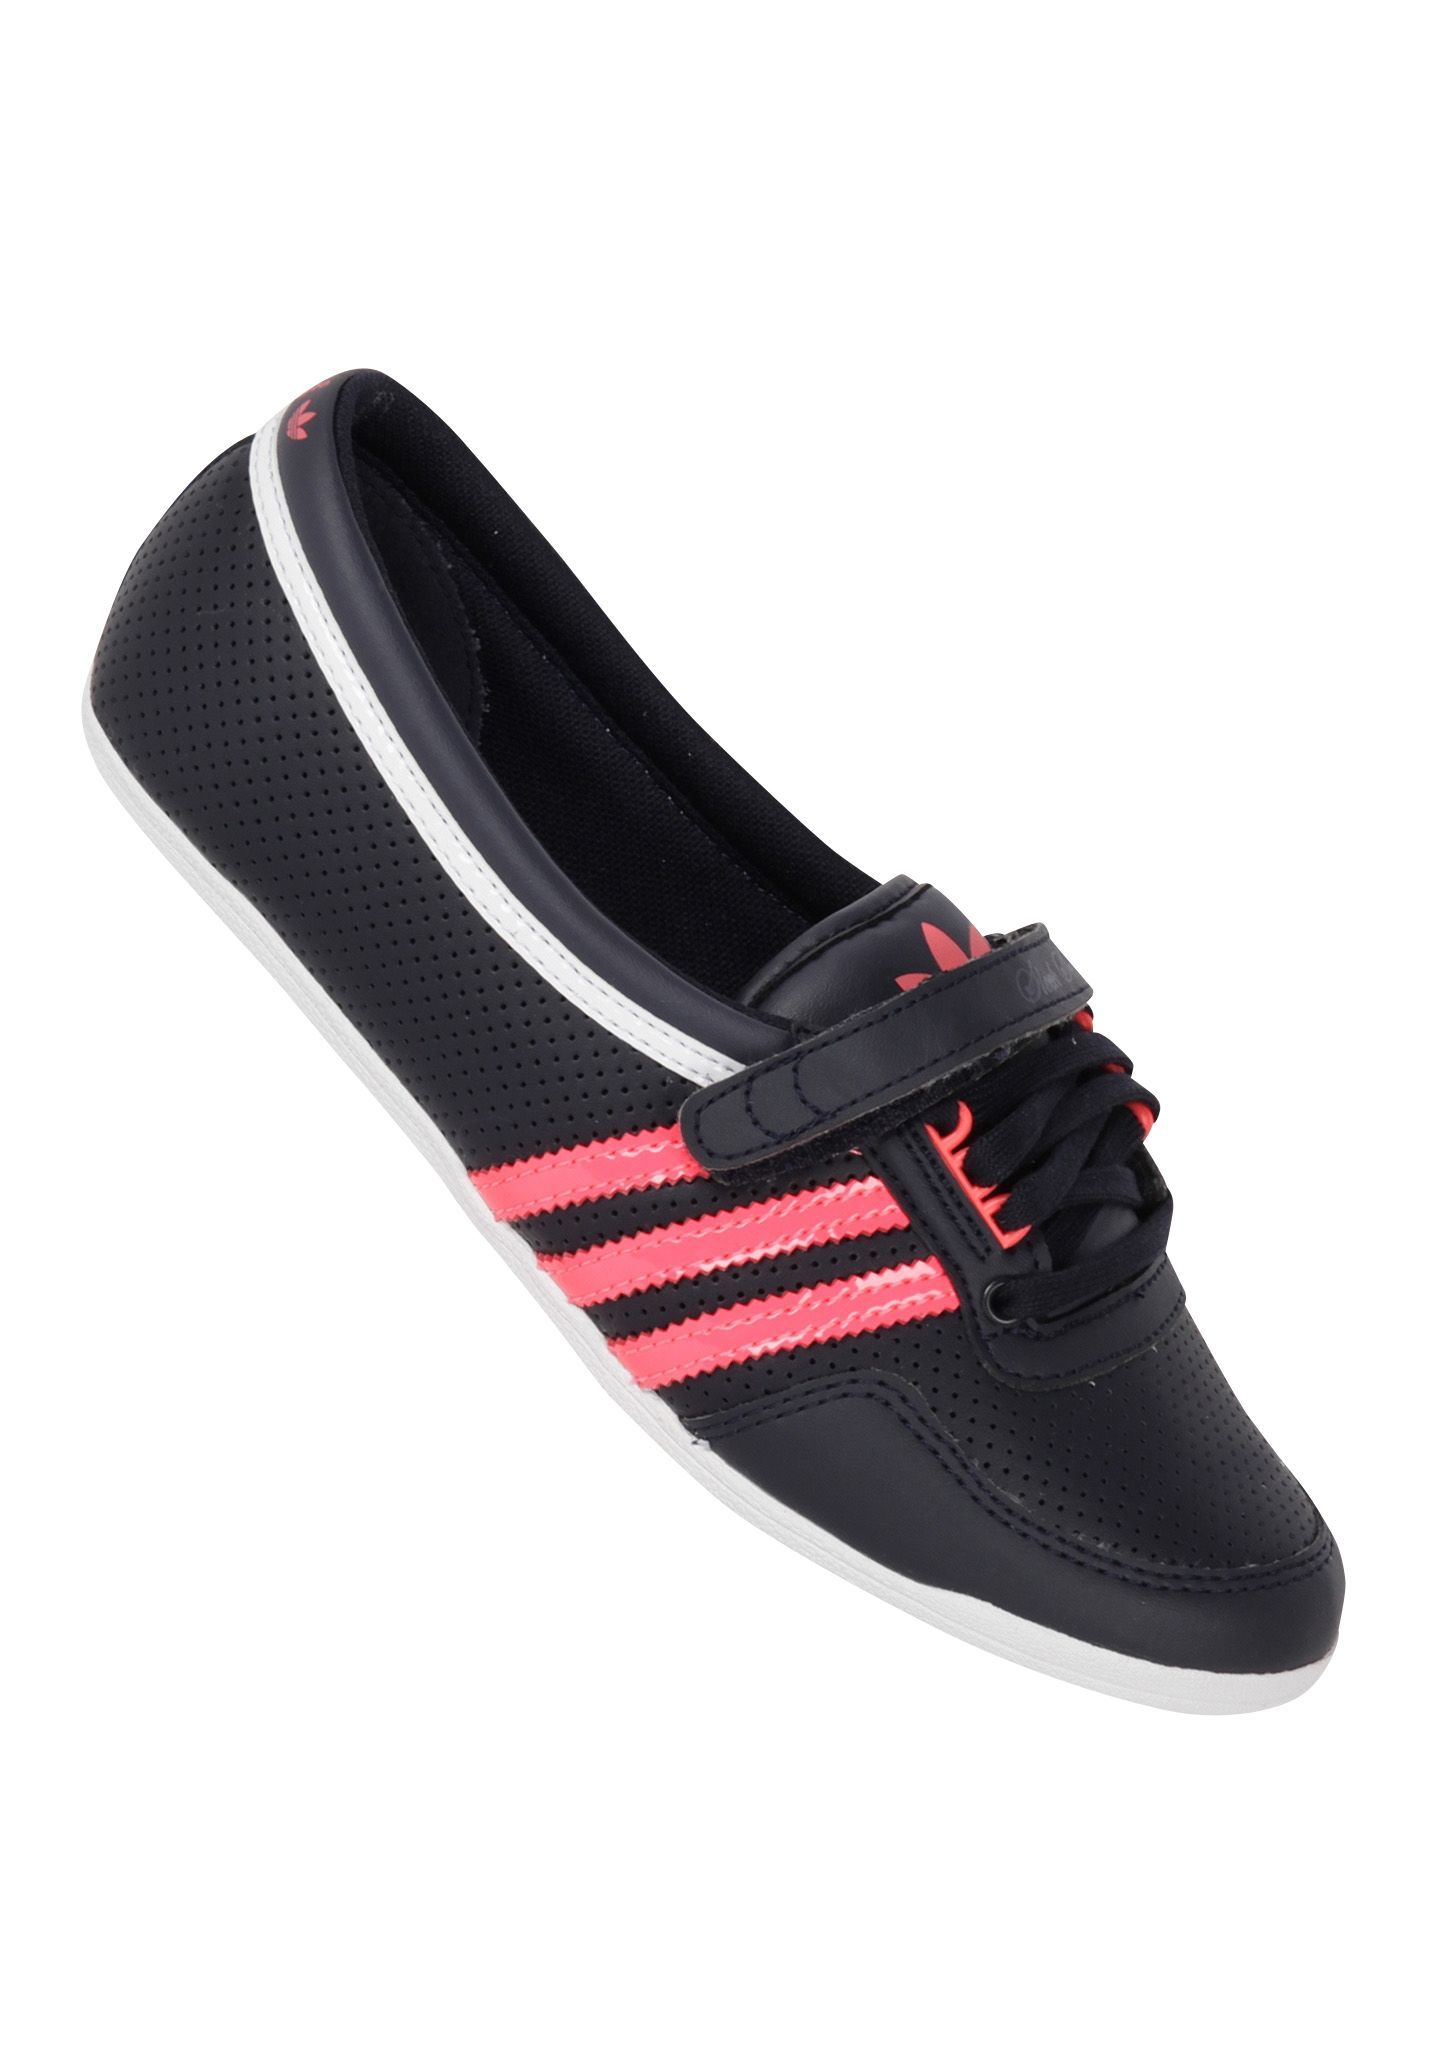 adidas concord round - ballerina shoes for women - black - planet sports IMILSNK